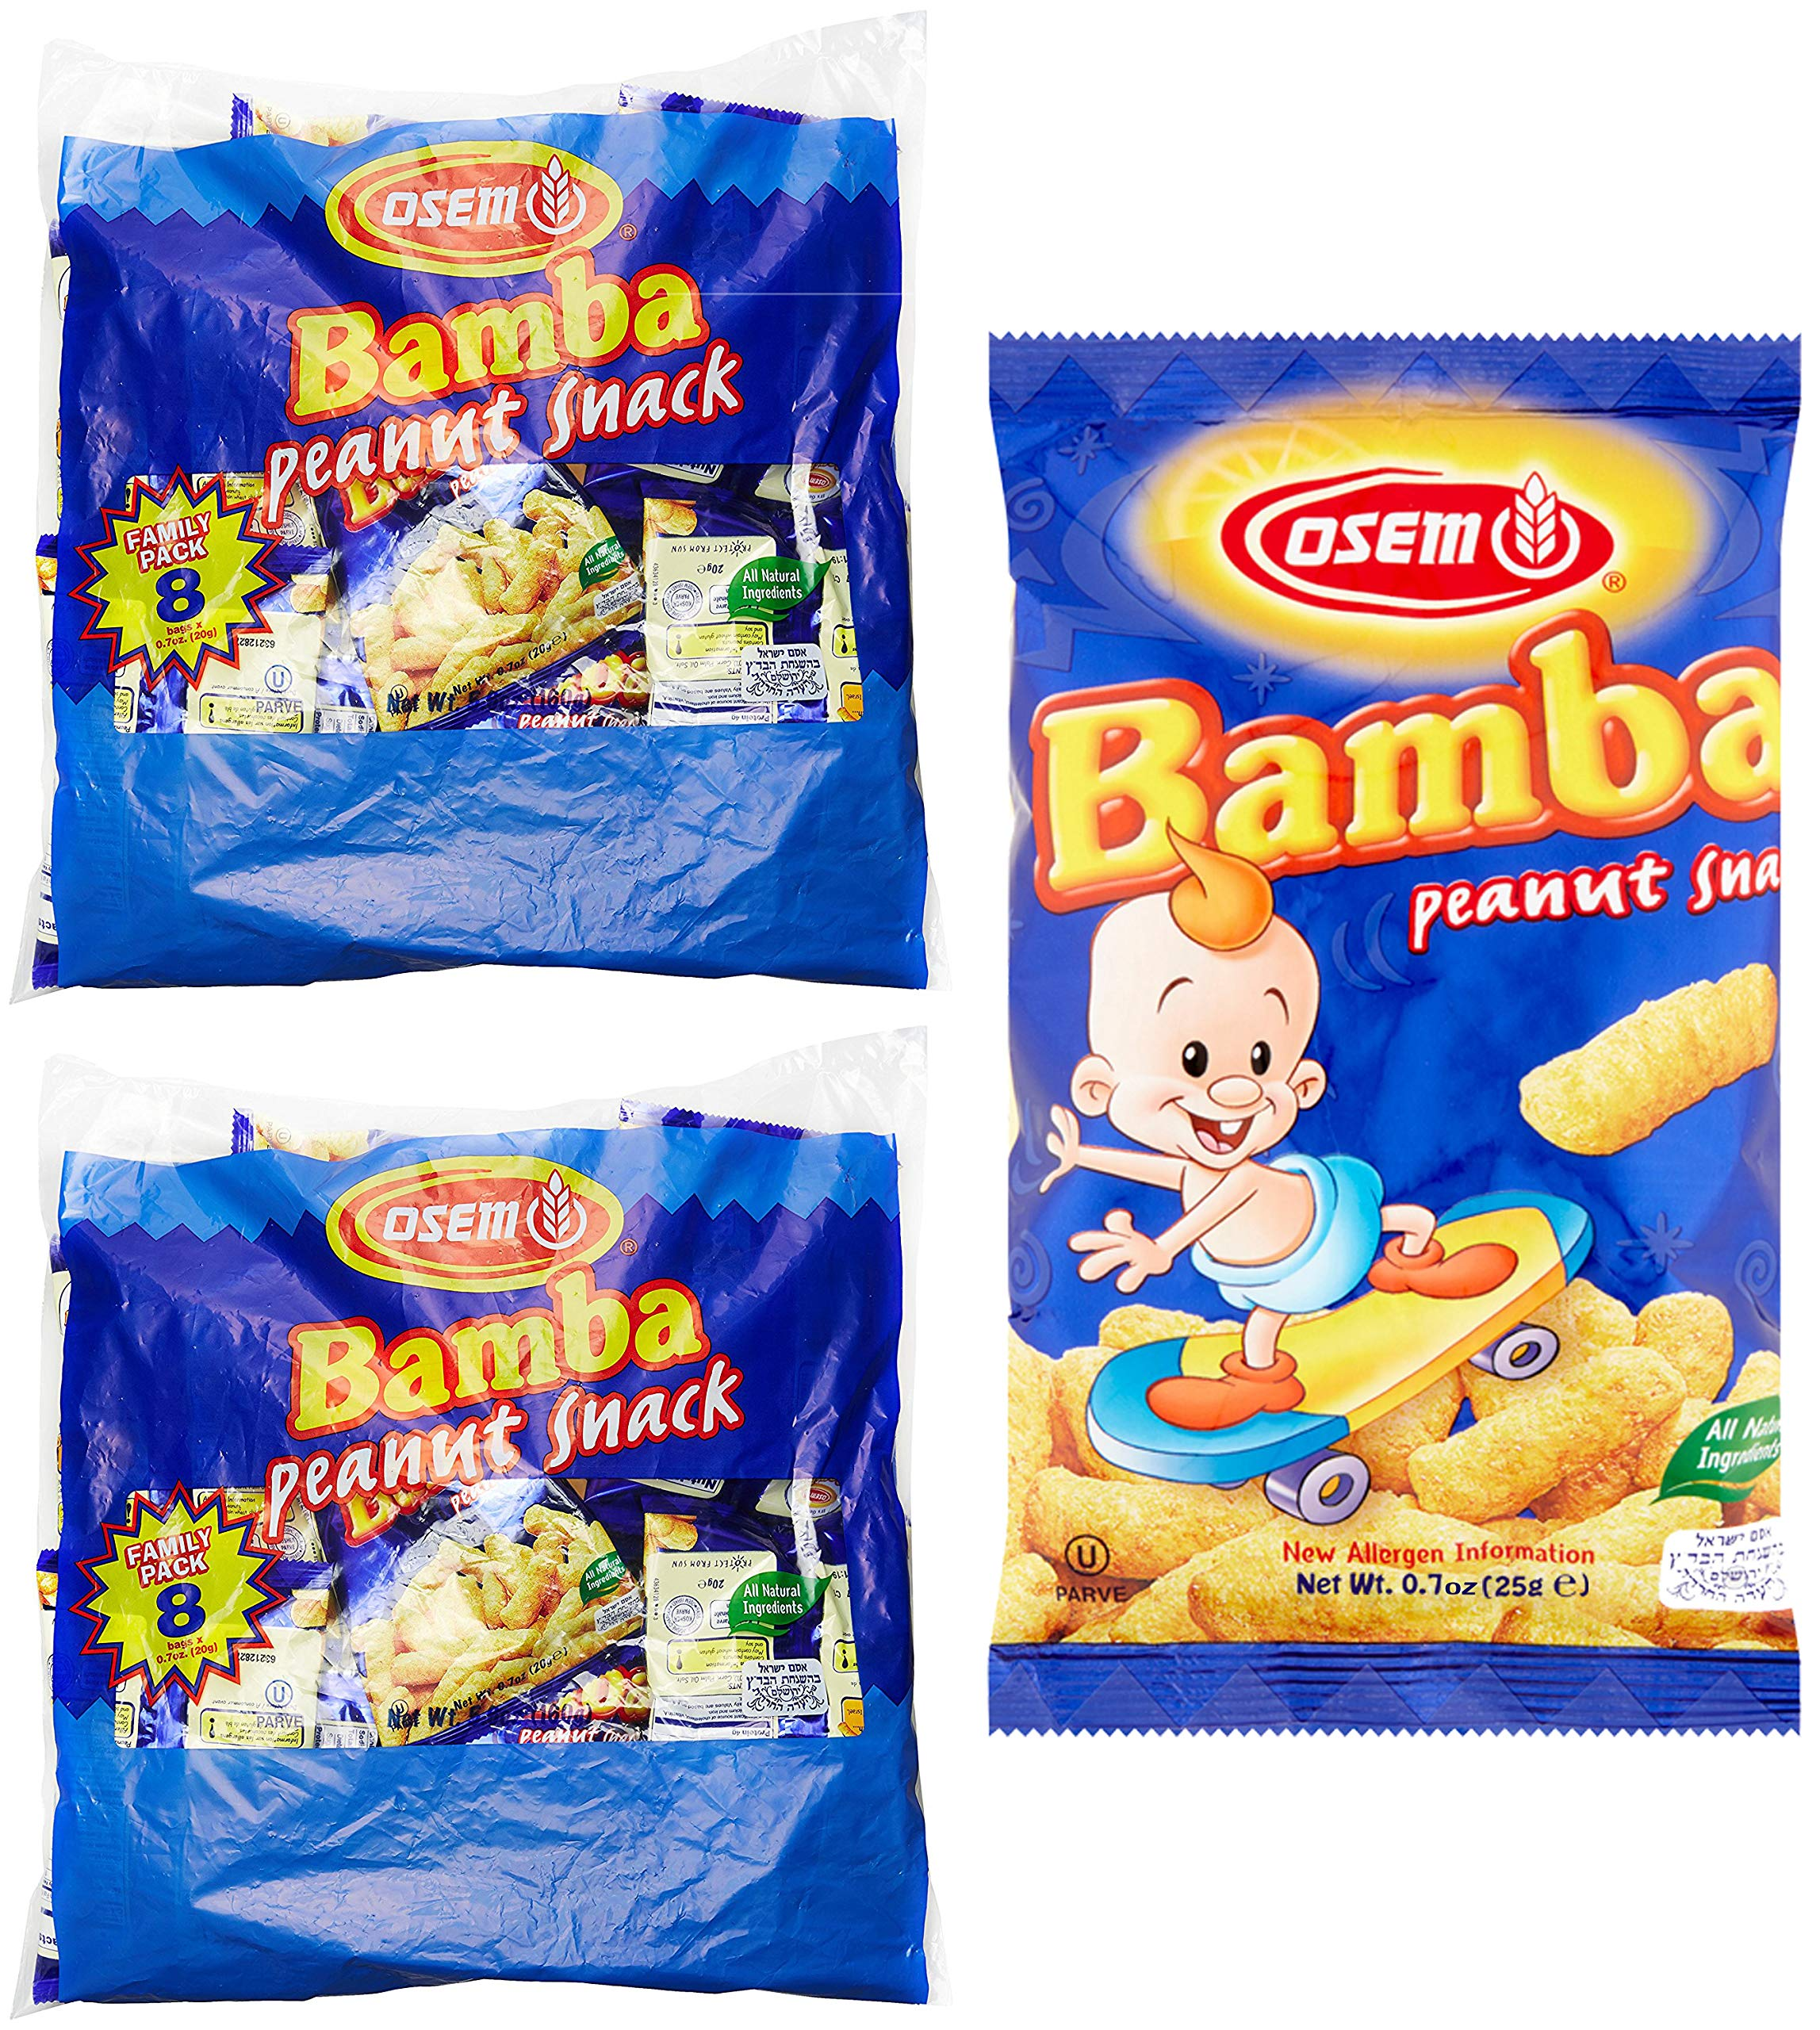 Bamba Peanut Butter Snacks All Natural Peanut Butter Corn Puff Snack (2 Family Packs) (Pack of 16 x 0.7oz Bags) by Osem (Image #1)